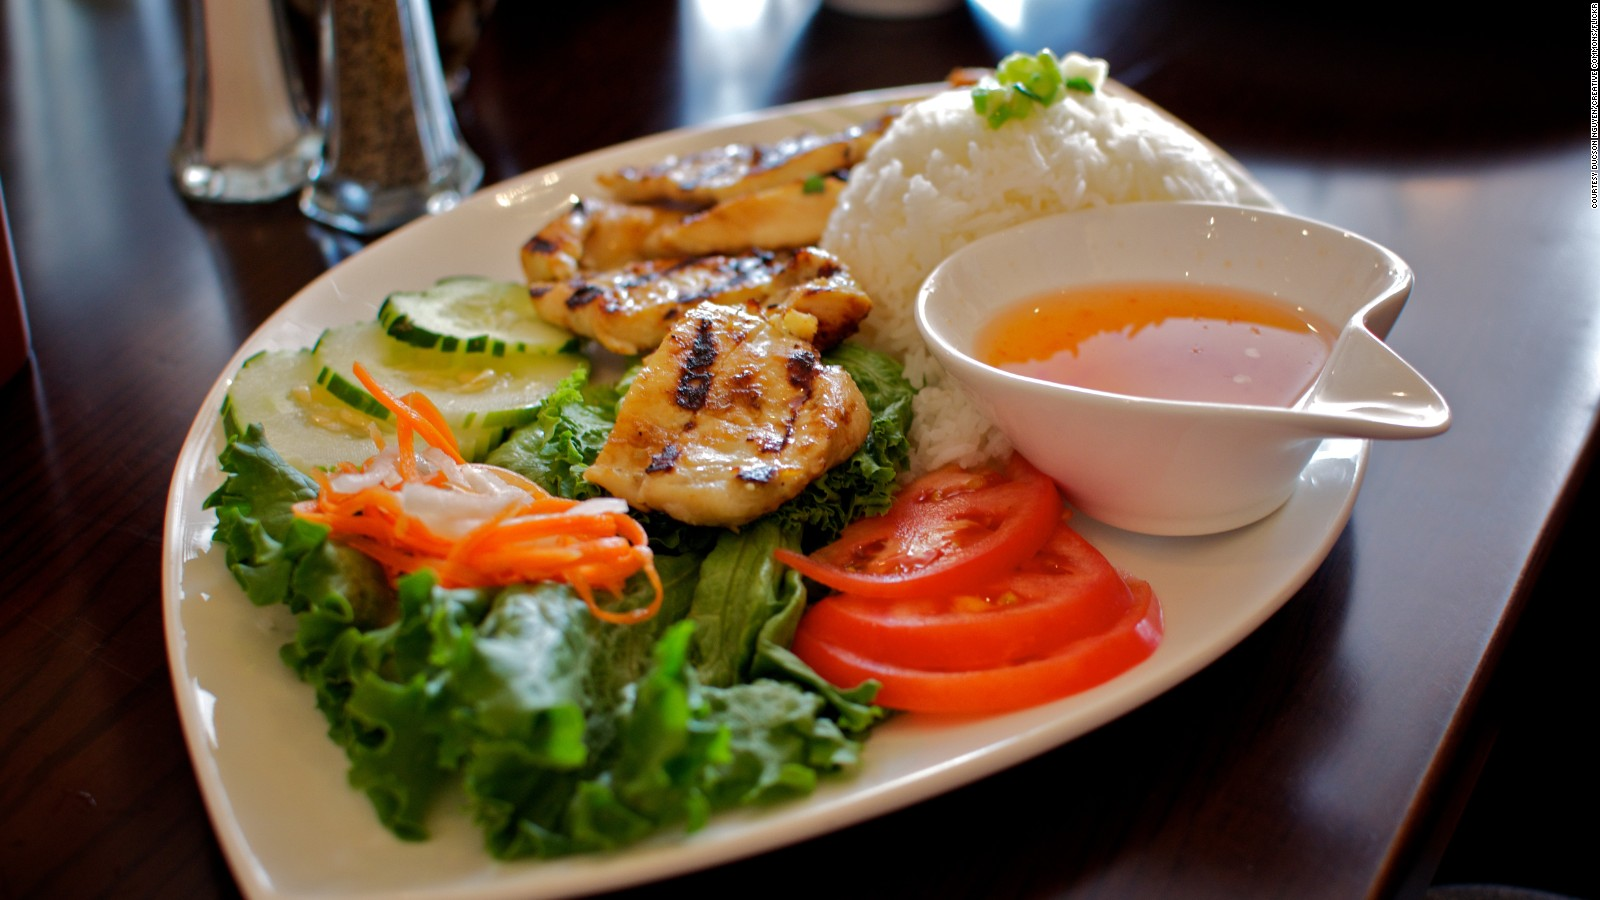 Vietnamese food: 40 delicious dishes to try in Vietnam   CNN